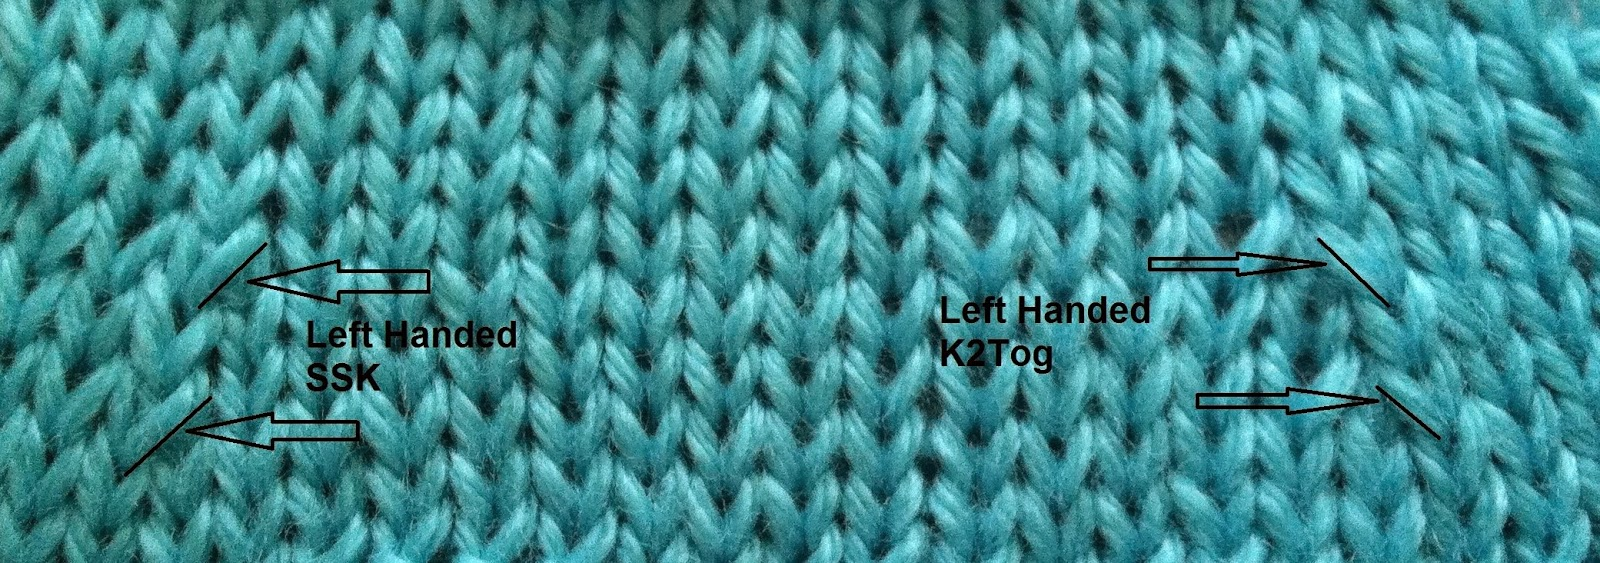 Knitting Left Handed Ssk : Yarn crafts for lefties which way do they go